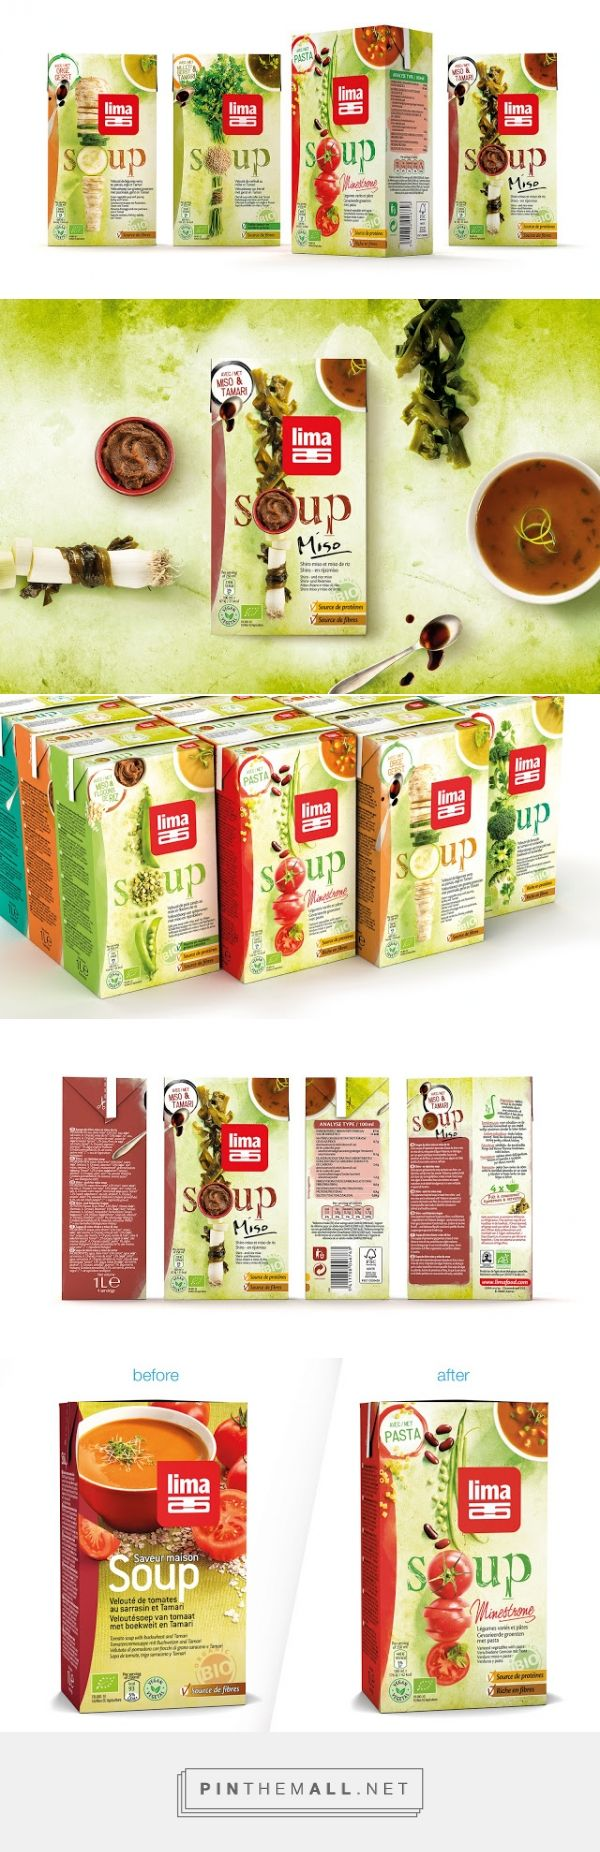 Lima Soups Redesign